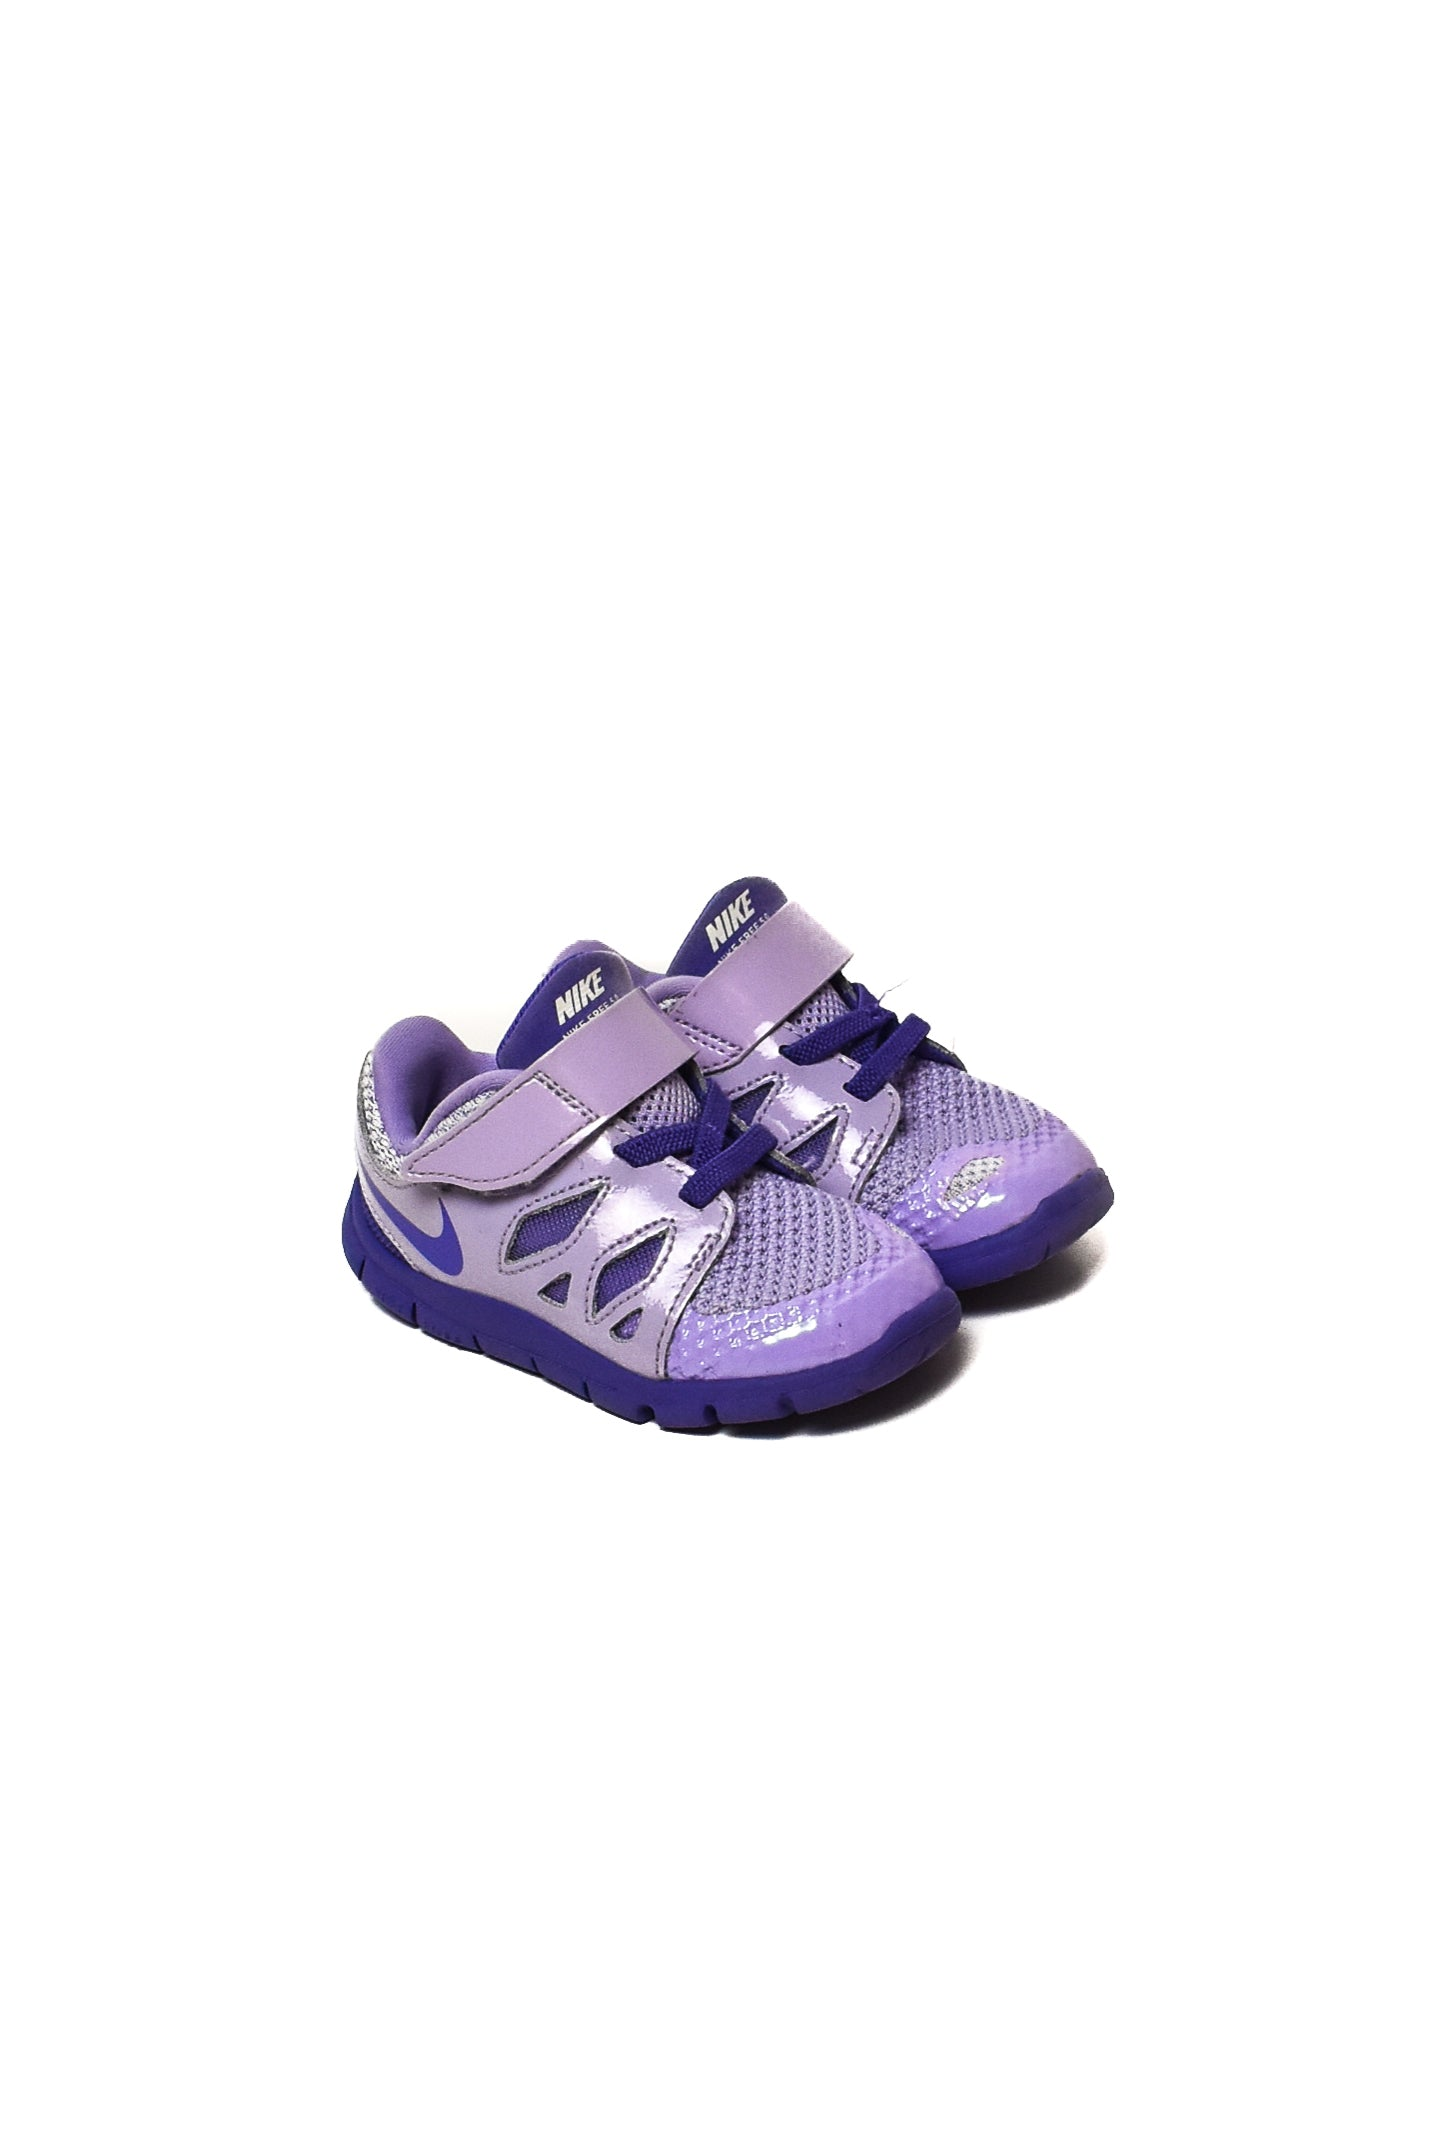 10007114 Nike Baby ~ Shoes 18-24M (EU 22) at Retykle